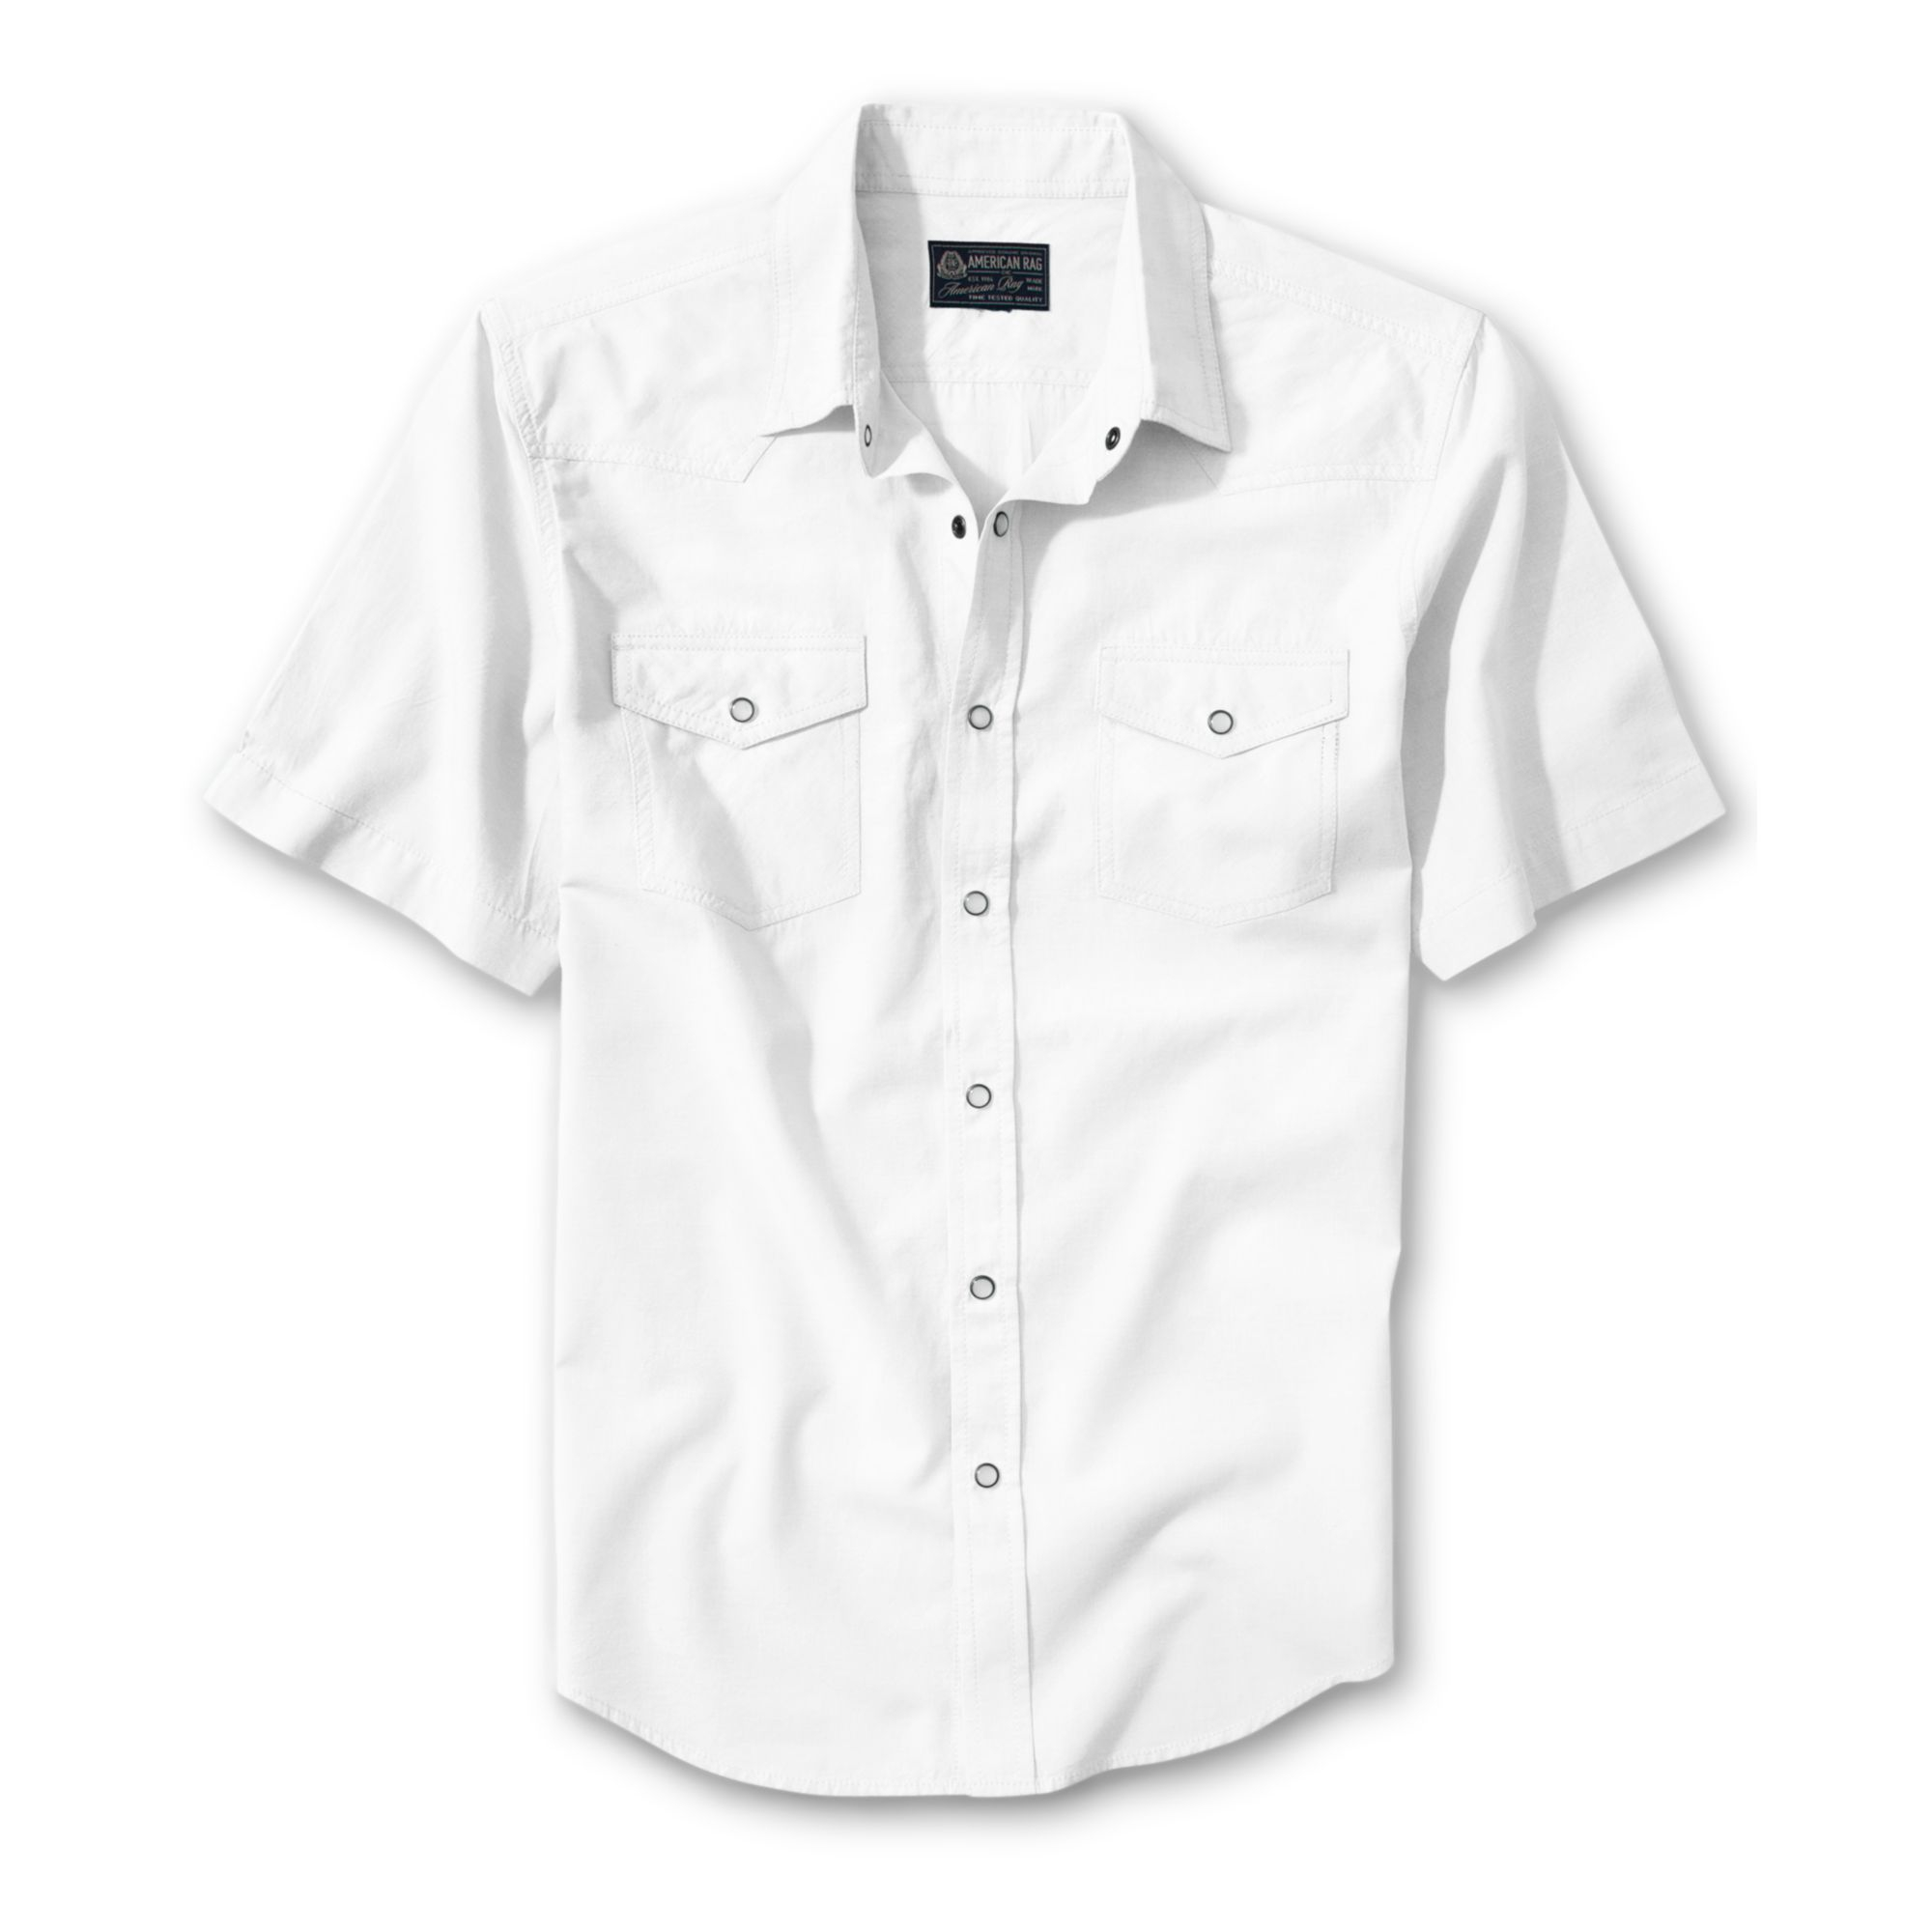 Short Sleeve White Button Down Shirt | Is Shirt